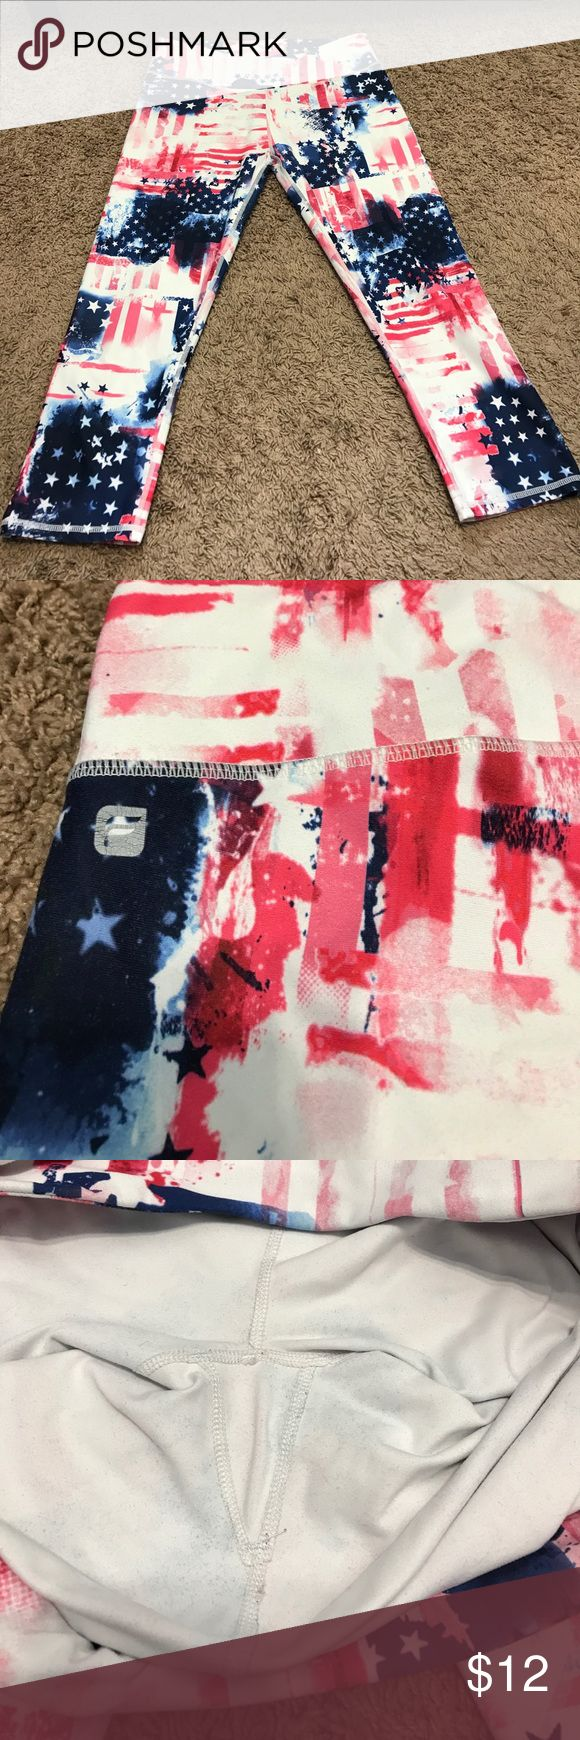 Crop Fabletics Leggings, American Flag Print Open to Offers! These are great for any fun occasion! They are very comfortable and have a little pocket in the waistband for keys or cards. Fabletics logo in back is a little cracked but other than that no stains or pulls! Fabletics Pants Ankle & Cropped